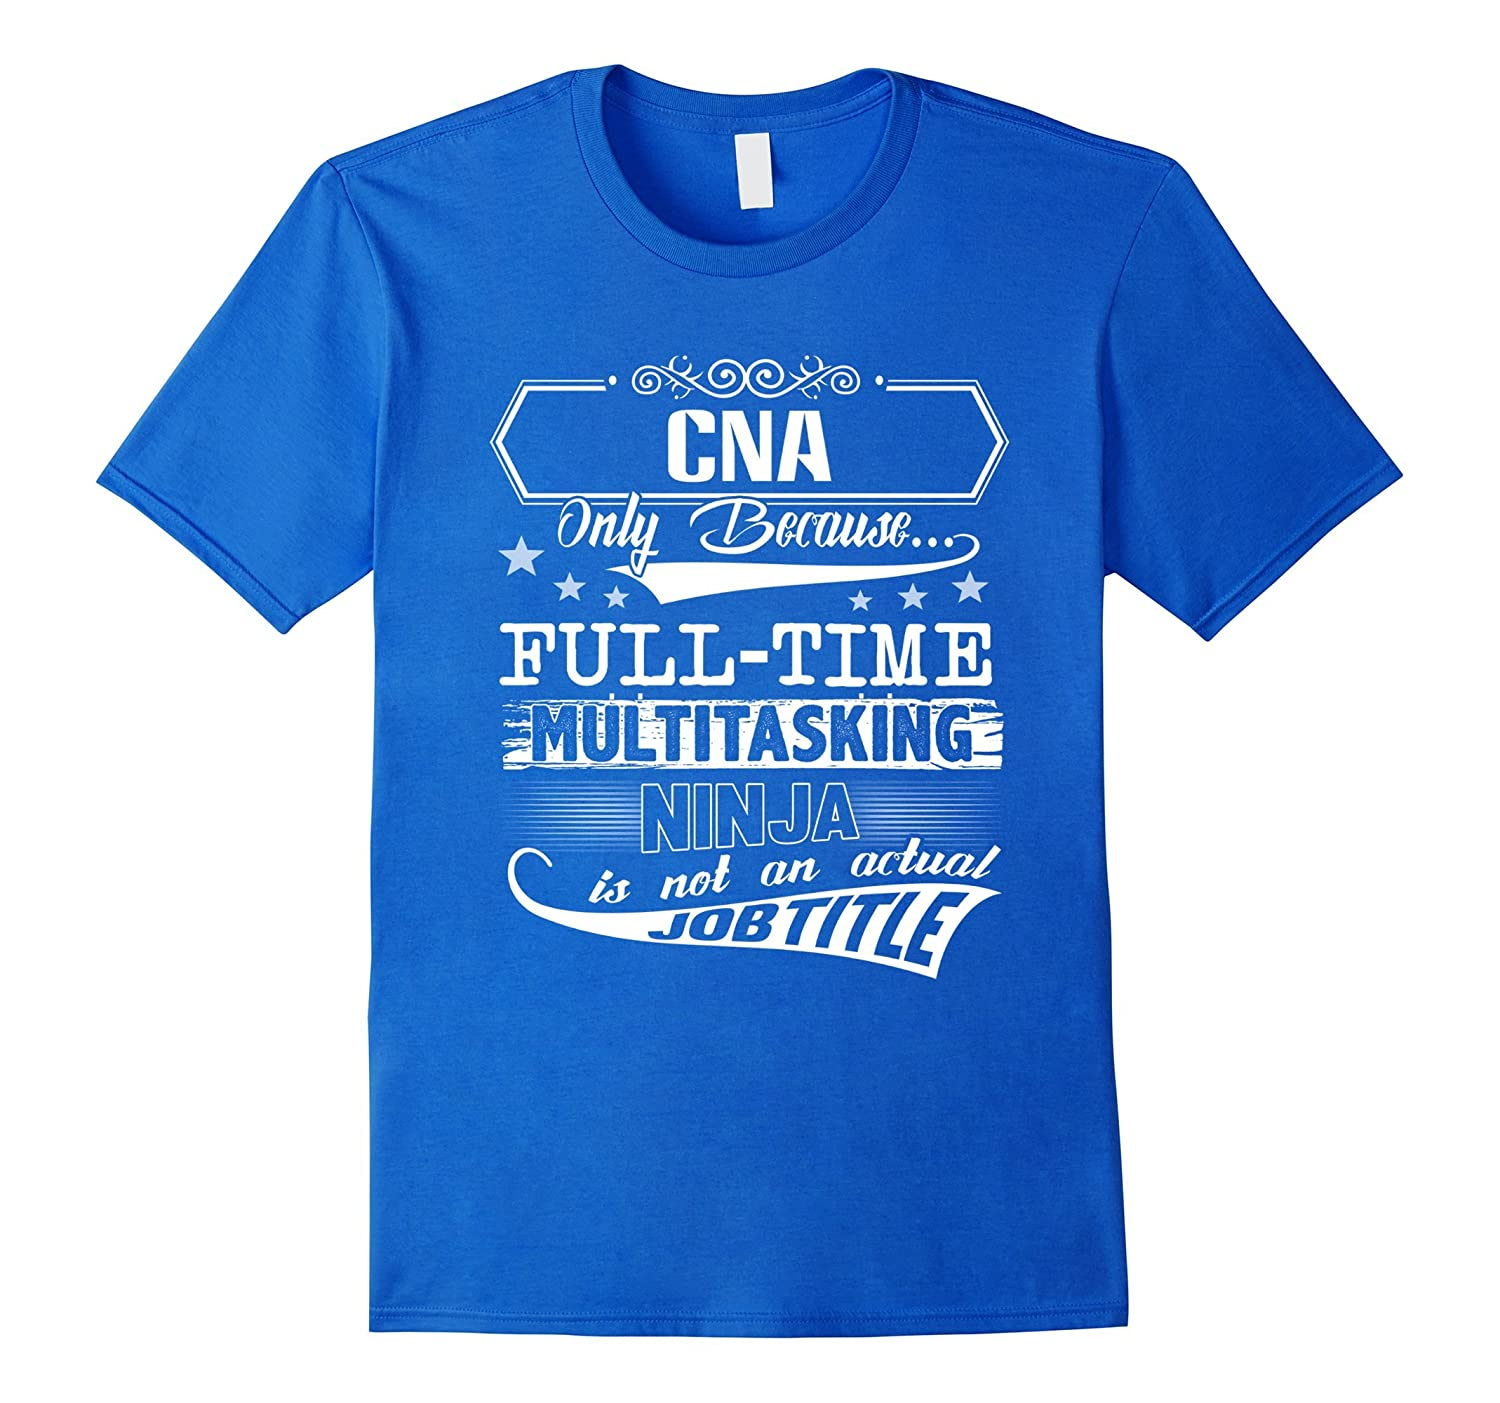 104fc5df CNA Only Because Full Time Multitasking Ninja T Shirt – Hntee.com